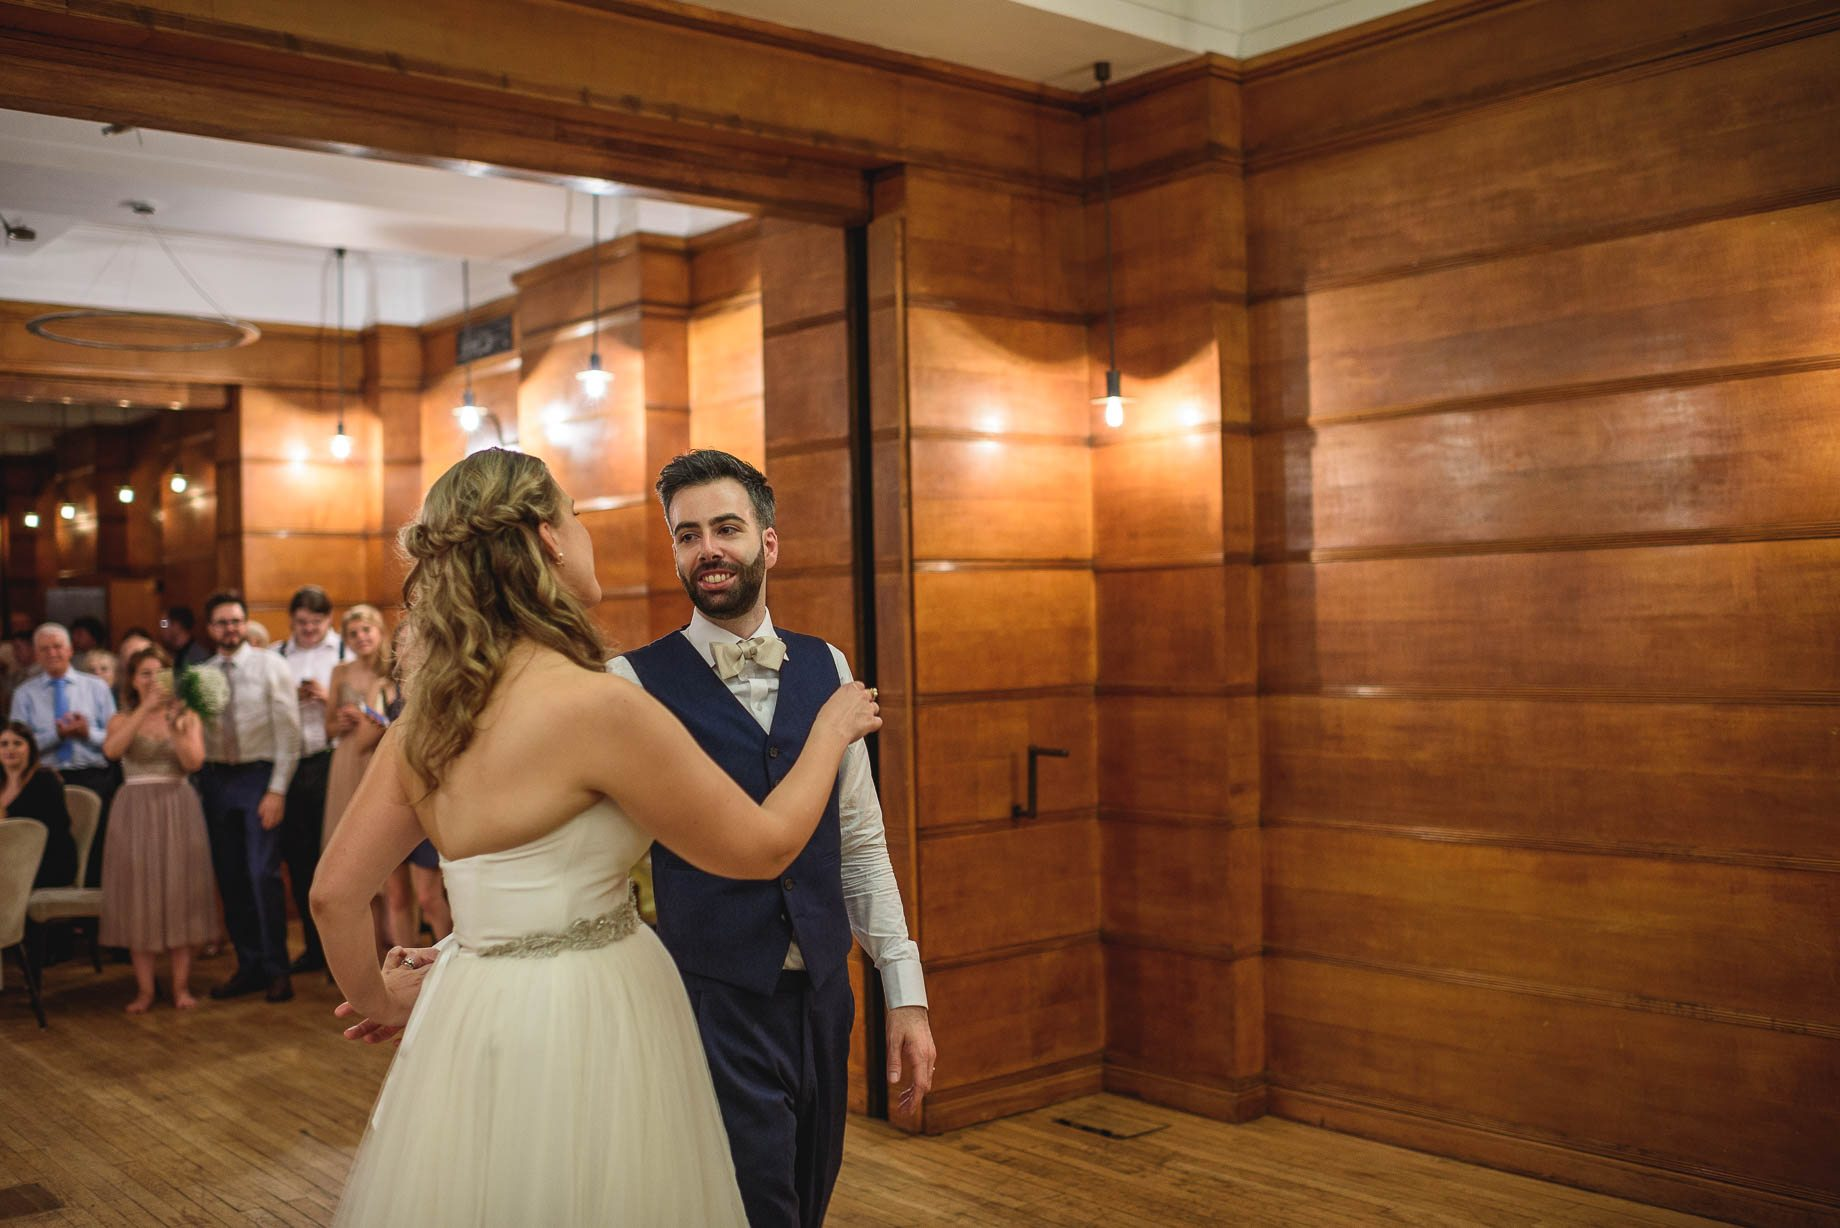 London Wedding Photography - Guy Collier Photography - LJ + Russell (147 of 155)